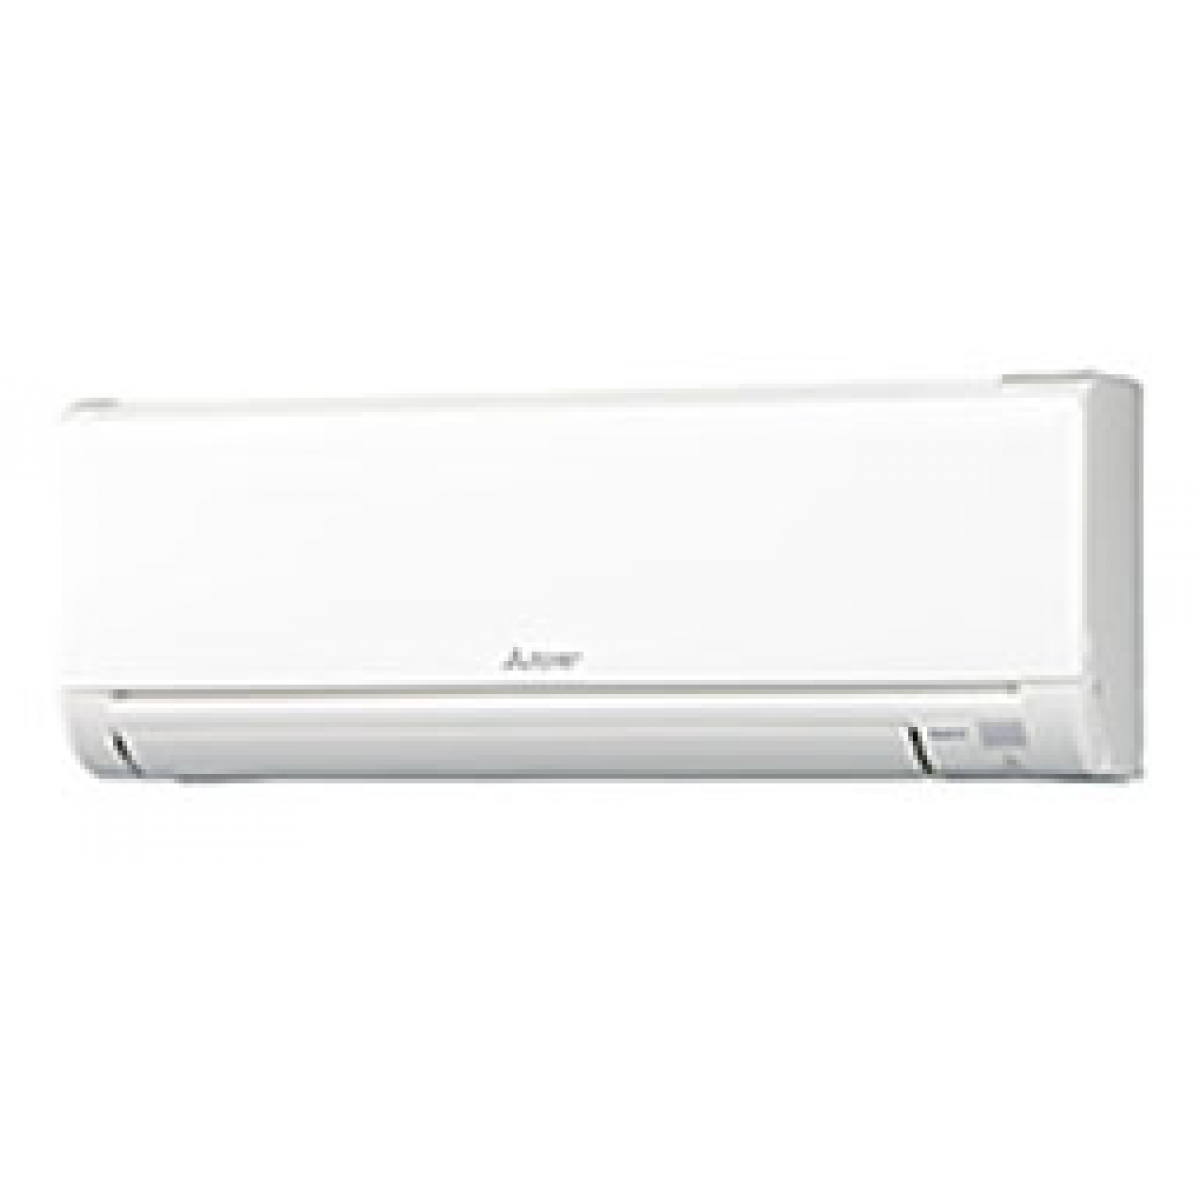 MSYGL Wall Mounted Air Conditioner Indoor Unit in Ductless AC #696862